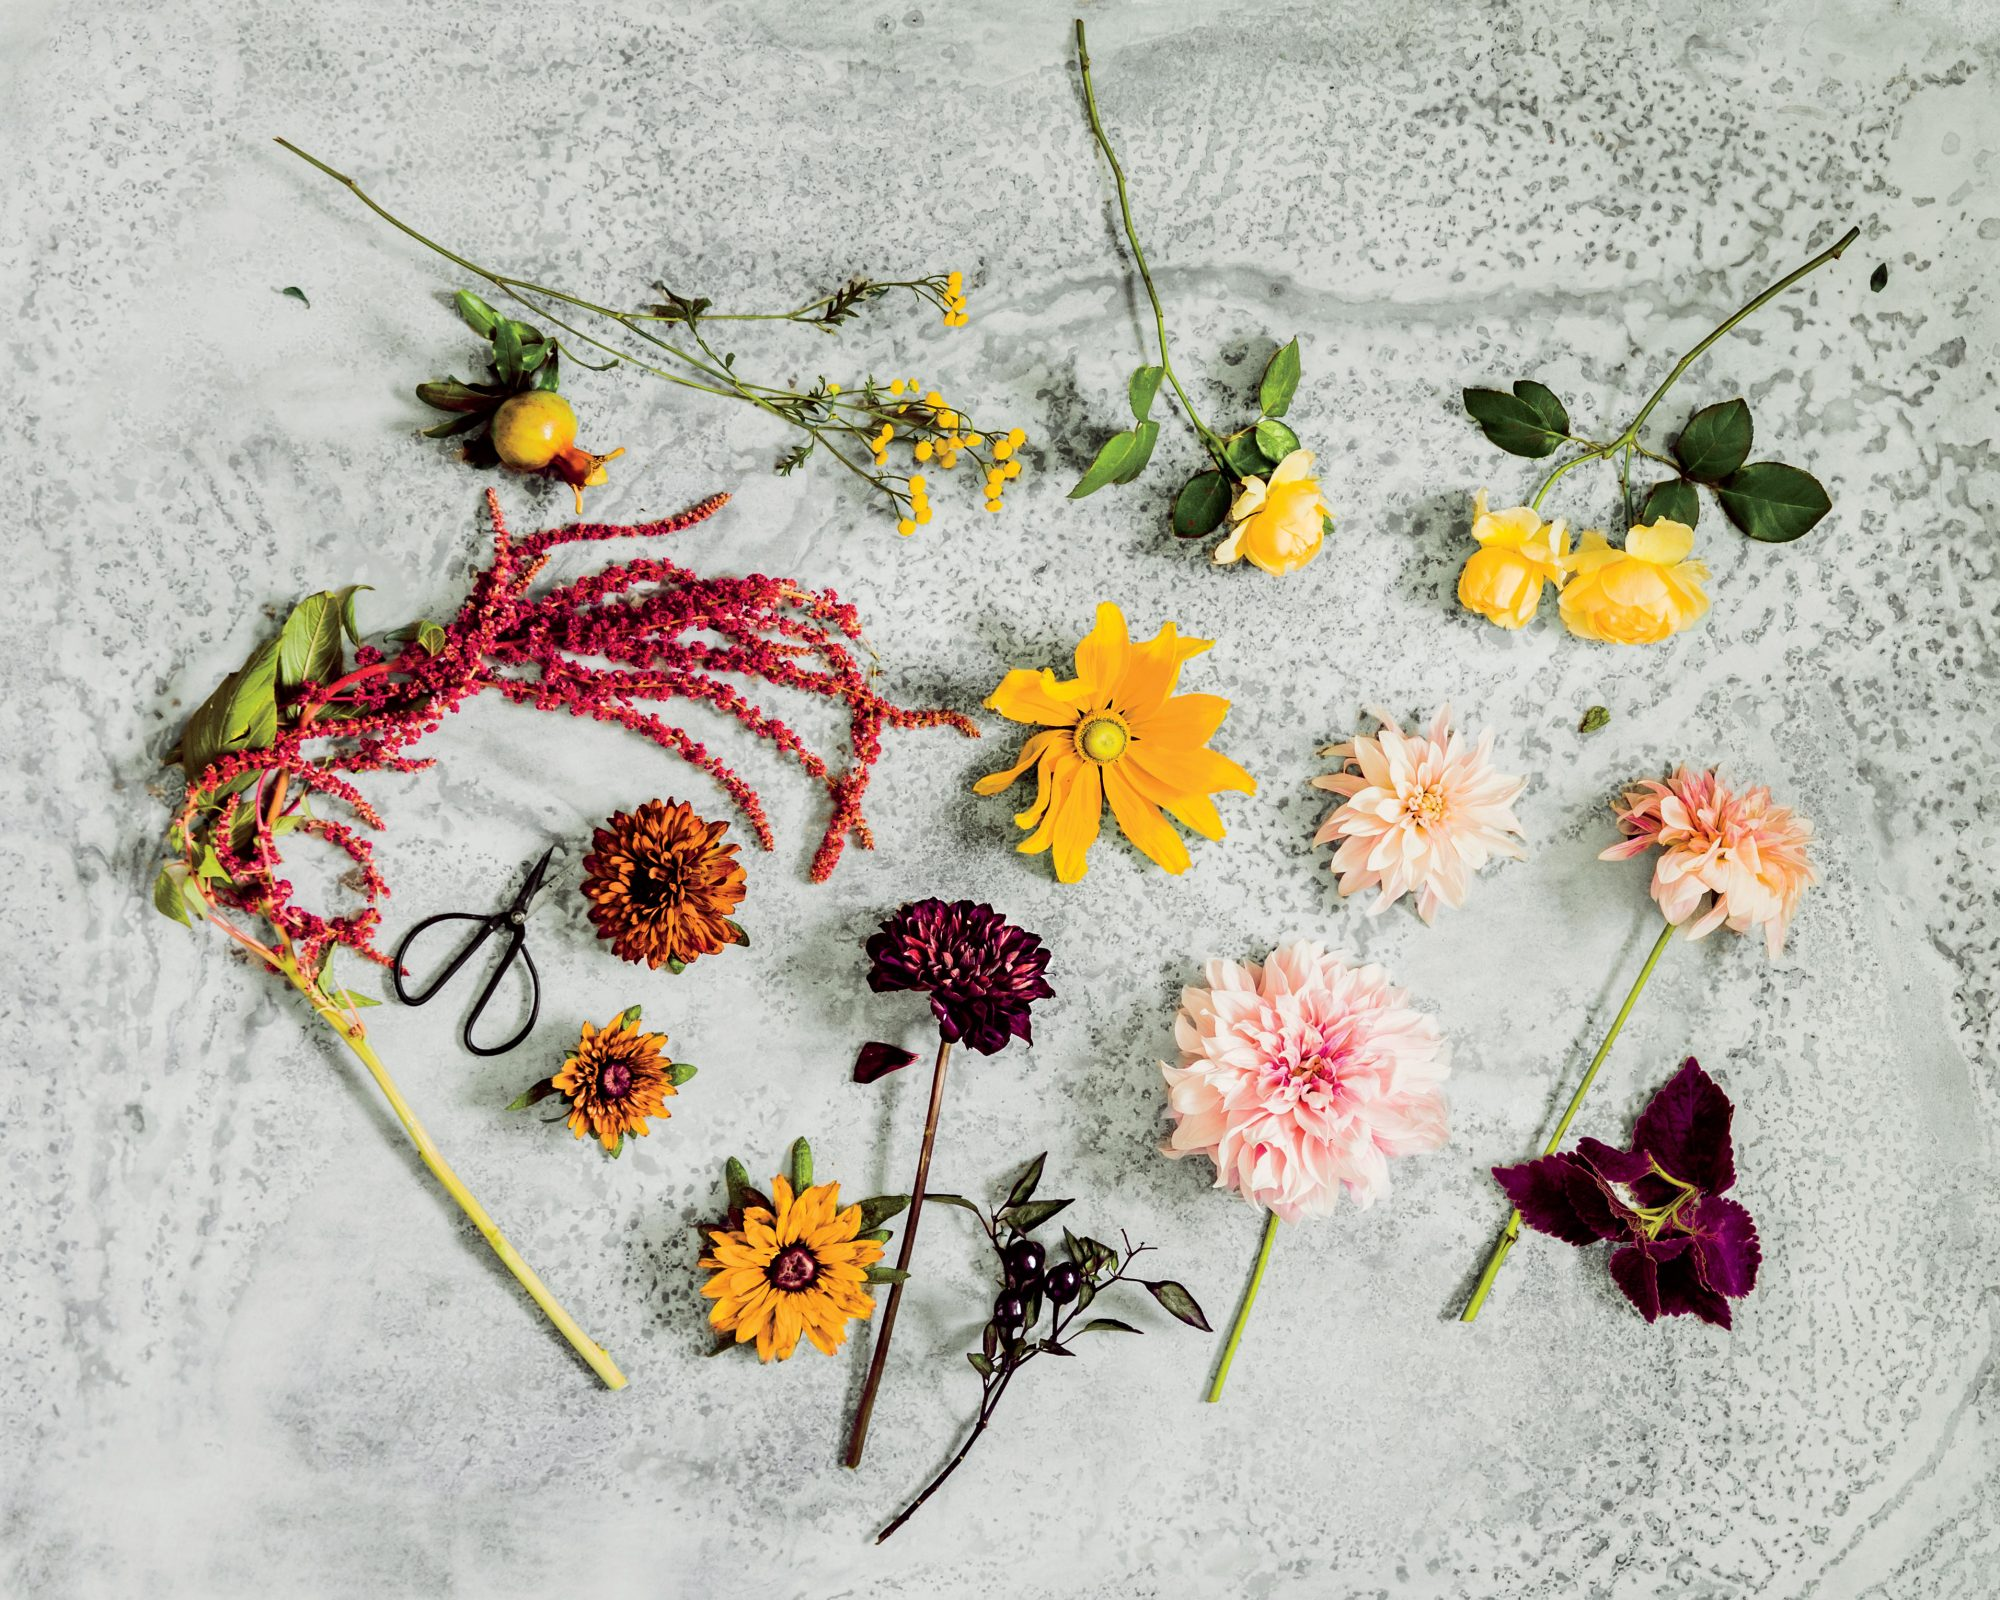 Materials for Flower Arrangement